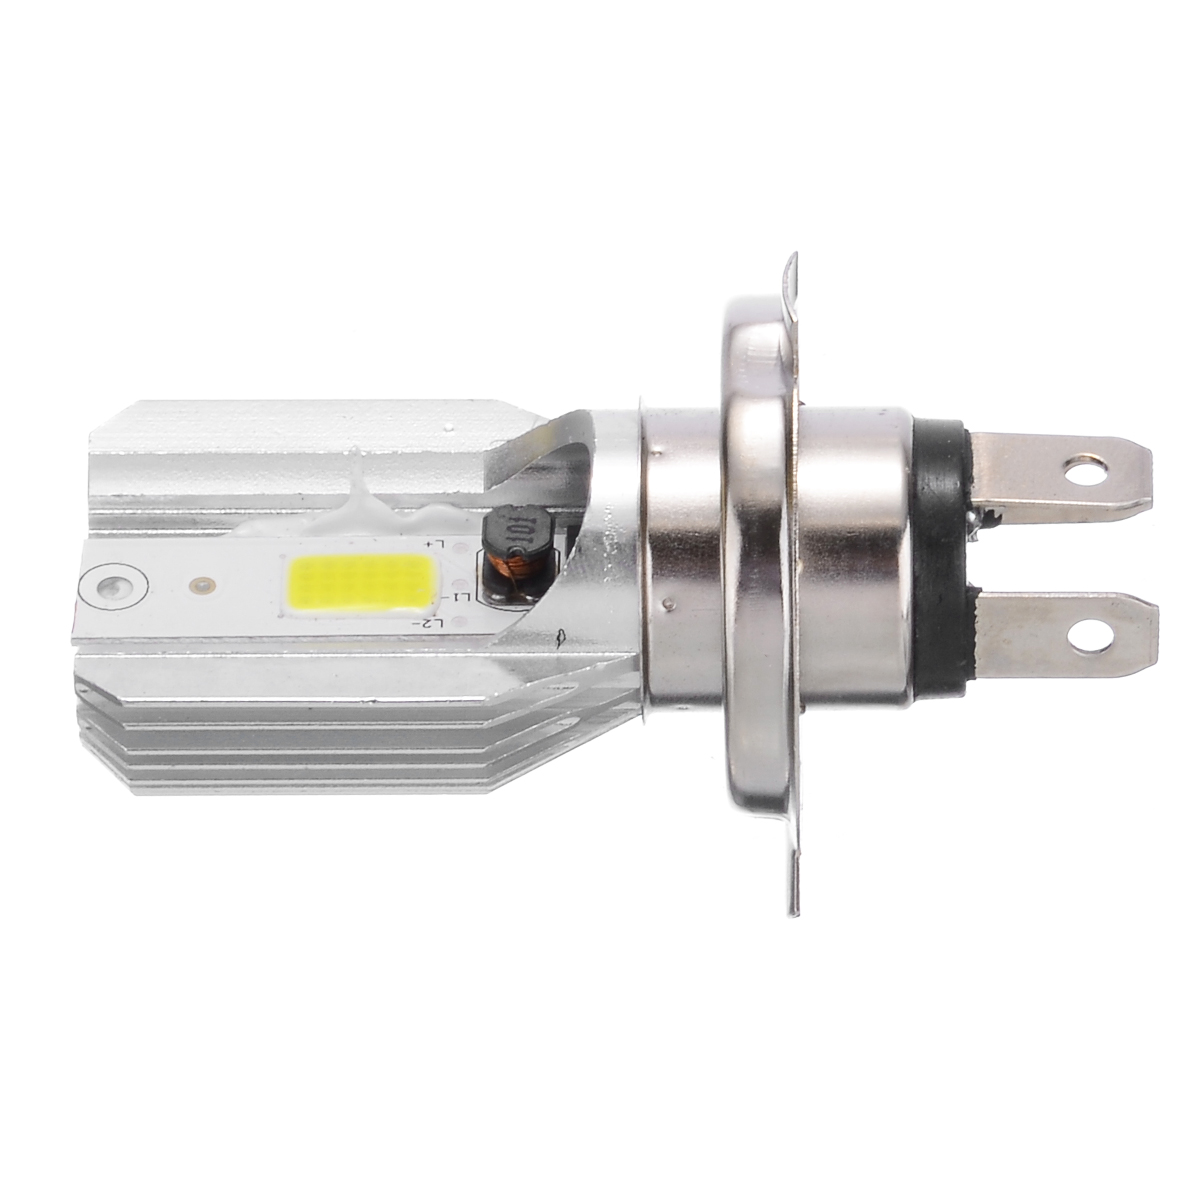 Image 4 - 1pc DC12V H4 LED Motorcycle Motorbike Headlight Moto Fog Light Lamp Single sided Bulb 800 2000LM 6000K For Moped Scooter ATV